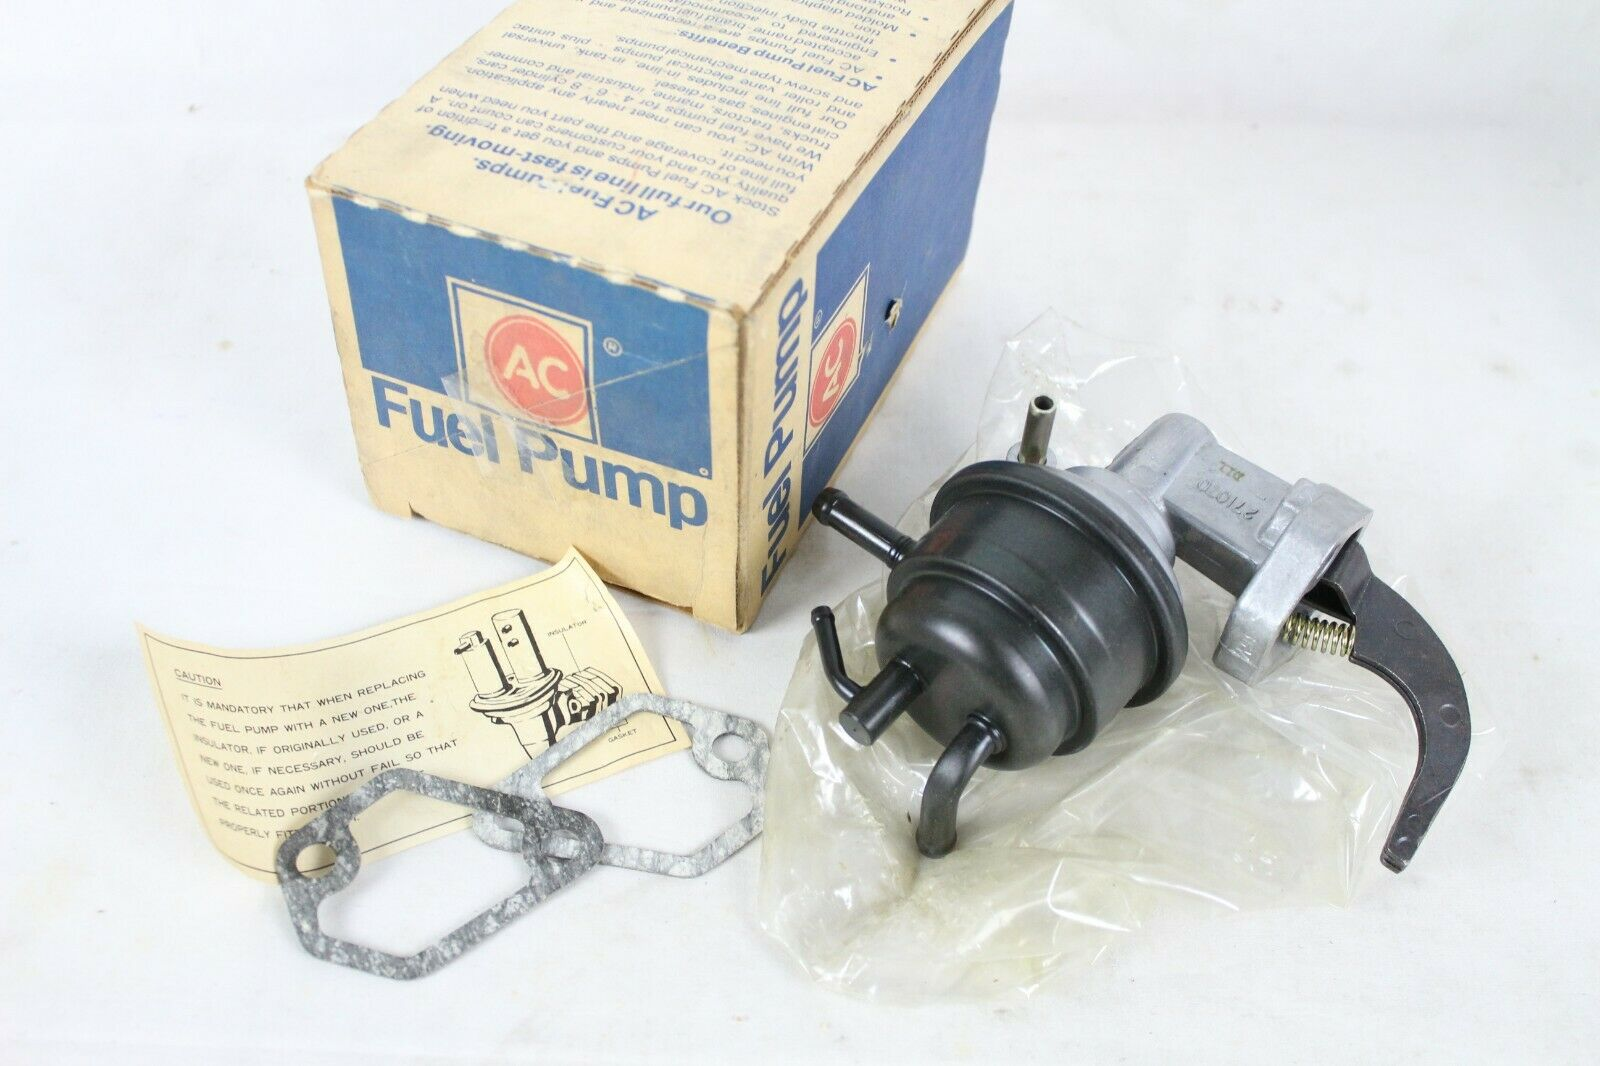 New NIB OEM Delco GM Fuel Pump 271070 Nikki Car Part